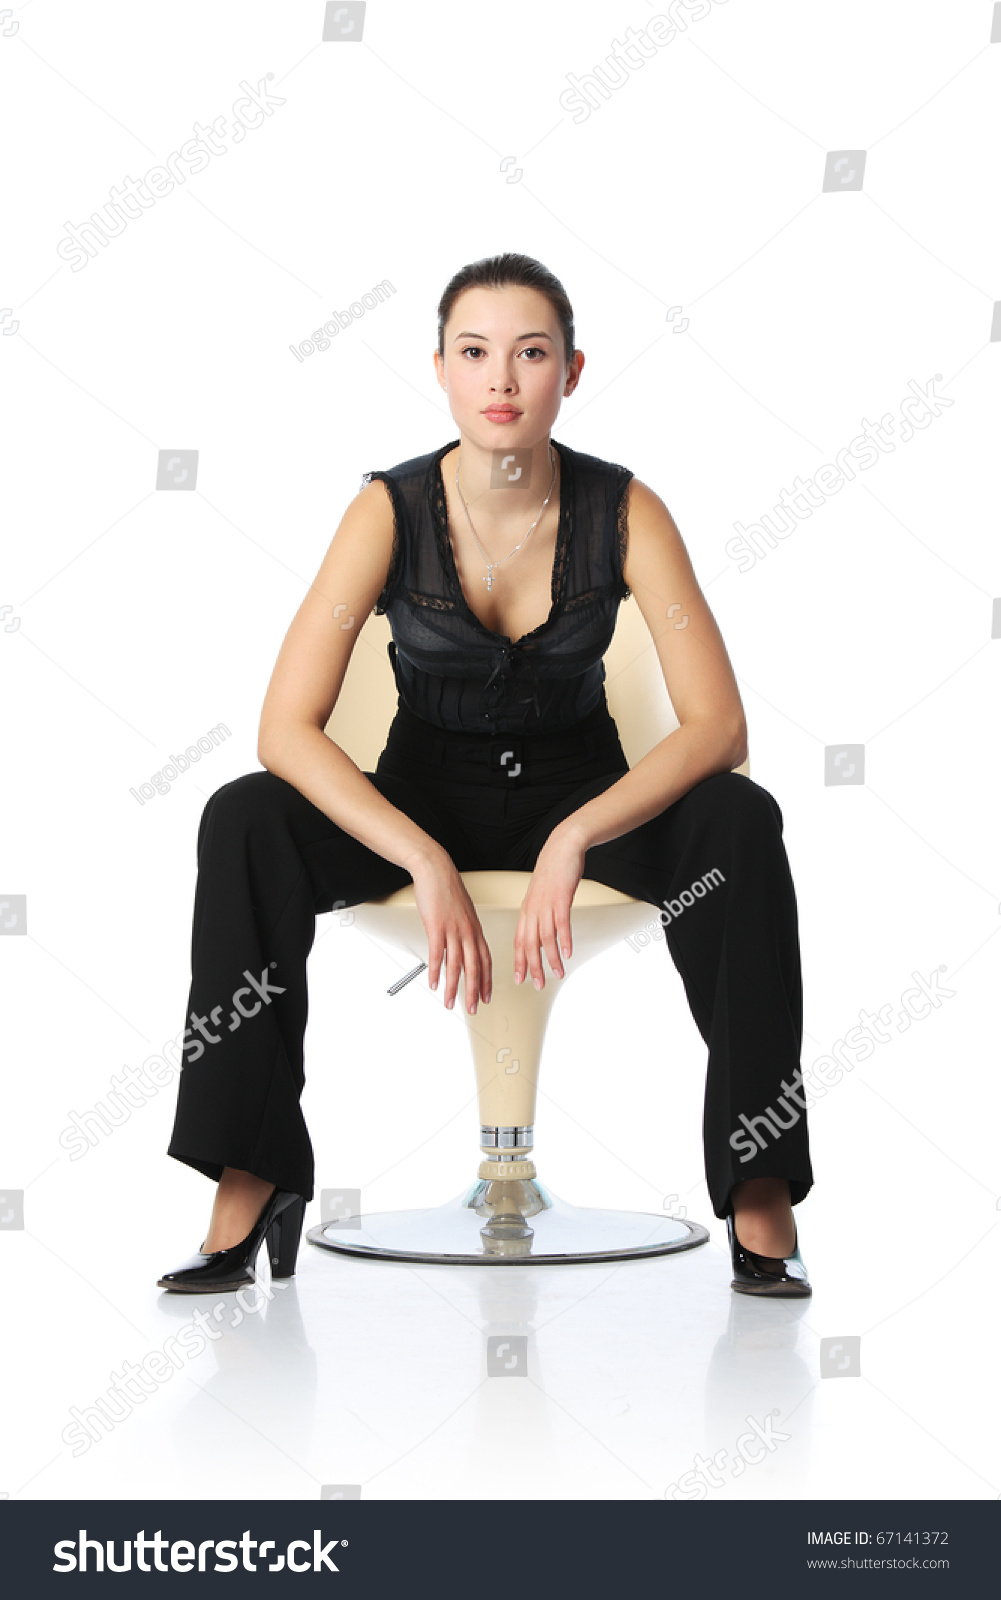 Asian businesswoman in black pants sitting in chair isolated on white background  sc 1 st  Shutterstock & Asian Businesswoman Black Pants Sitting Chair Stock Photo (Edit Now ...